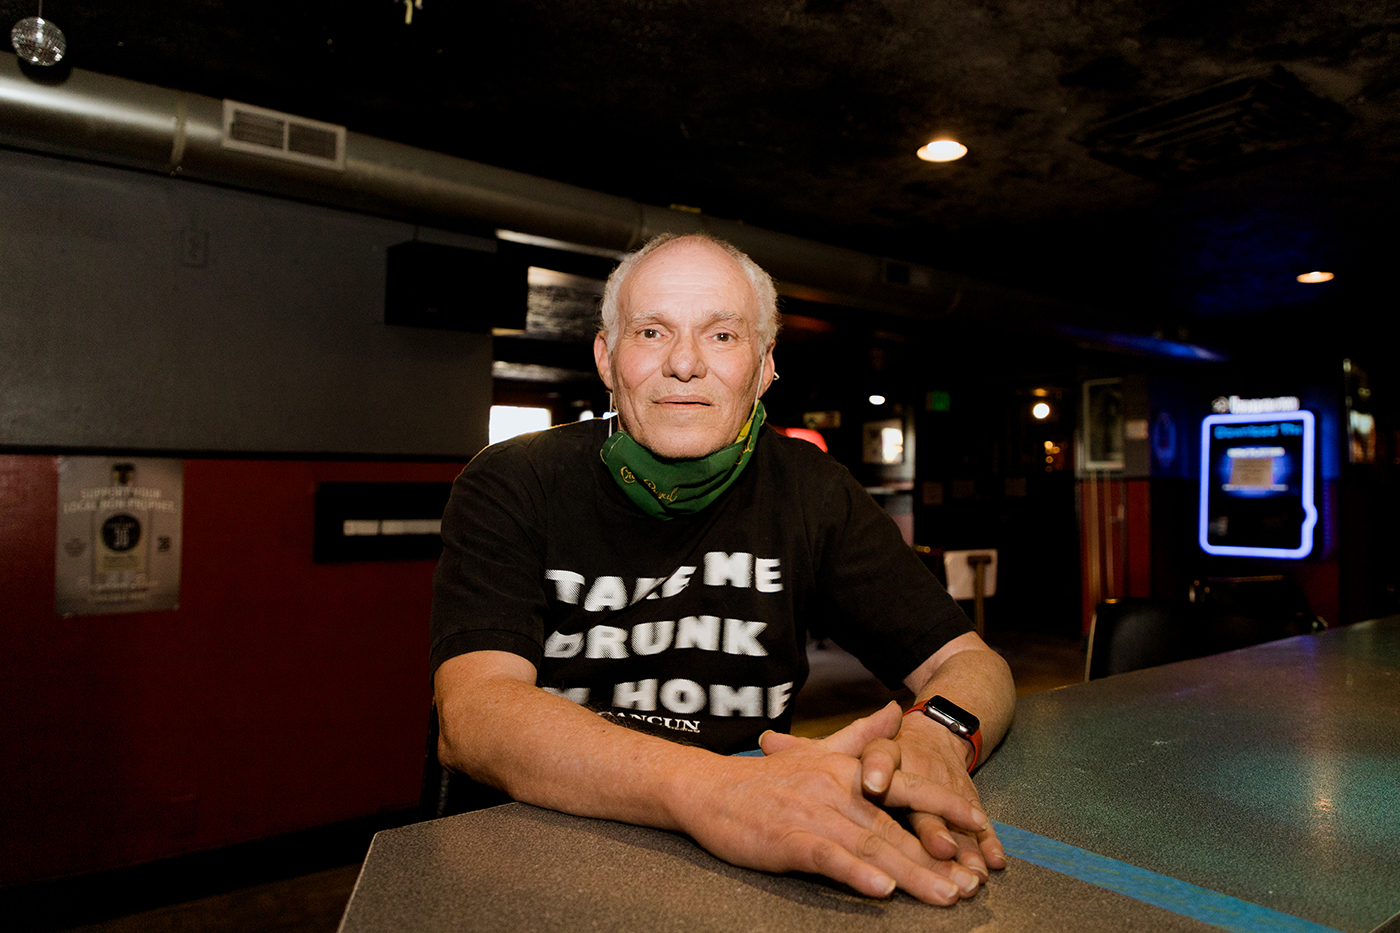 For nearly 20 years, Club Try-Angles and owner Gene Gieber has held open arms for Utah's LGBTQ+ community.